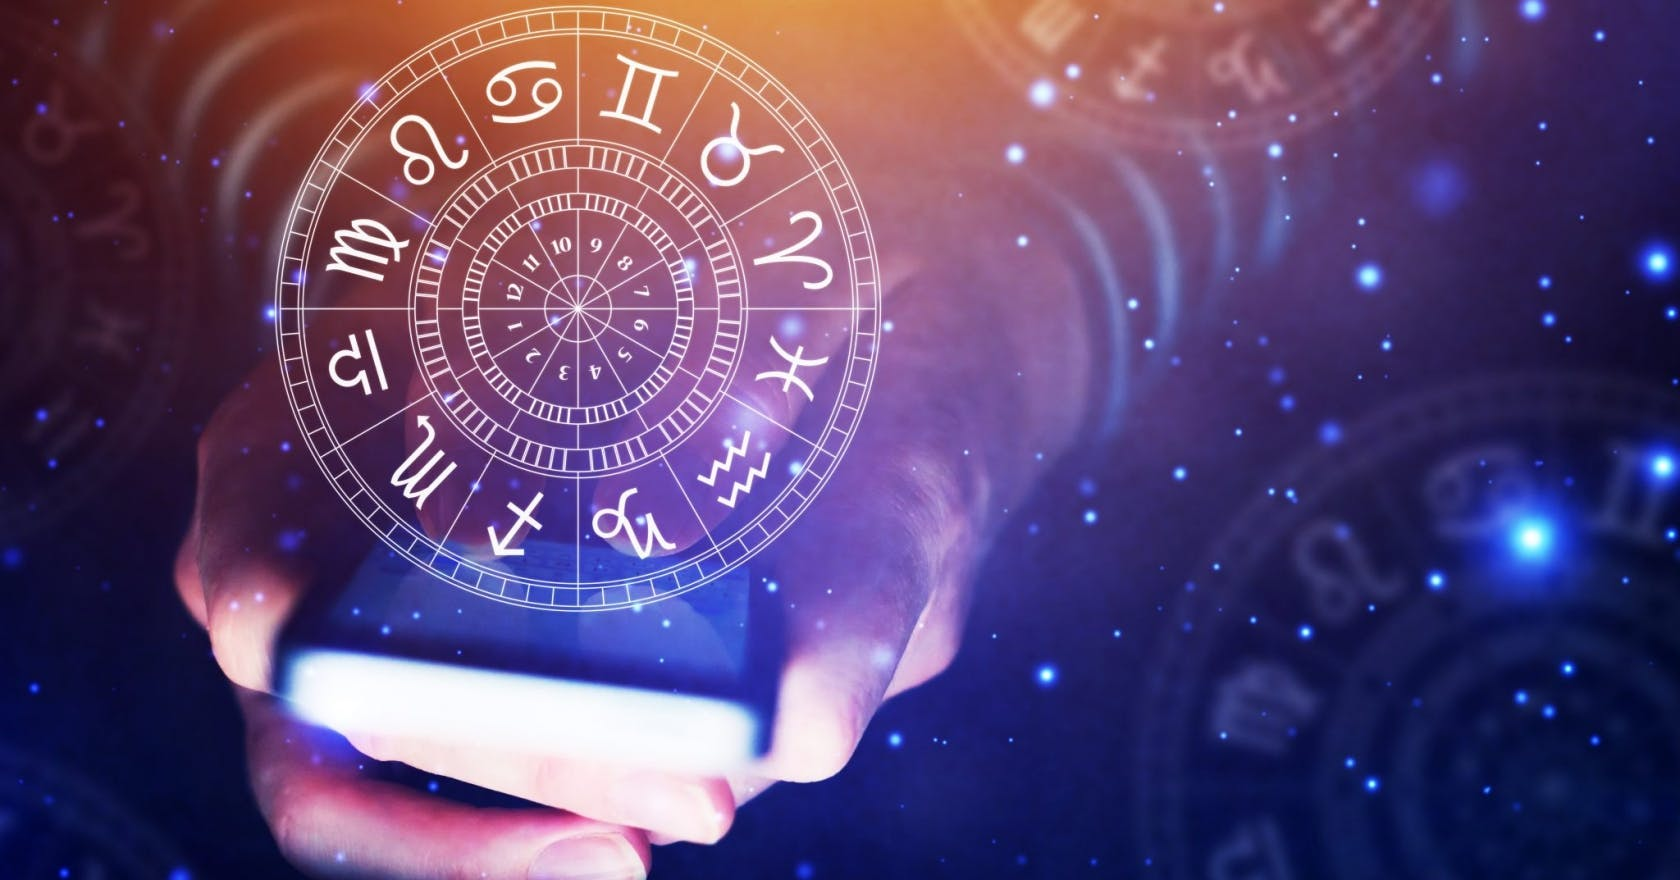 Astrology cover image